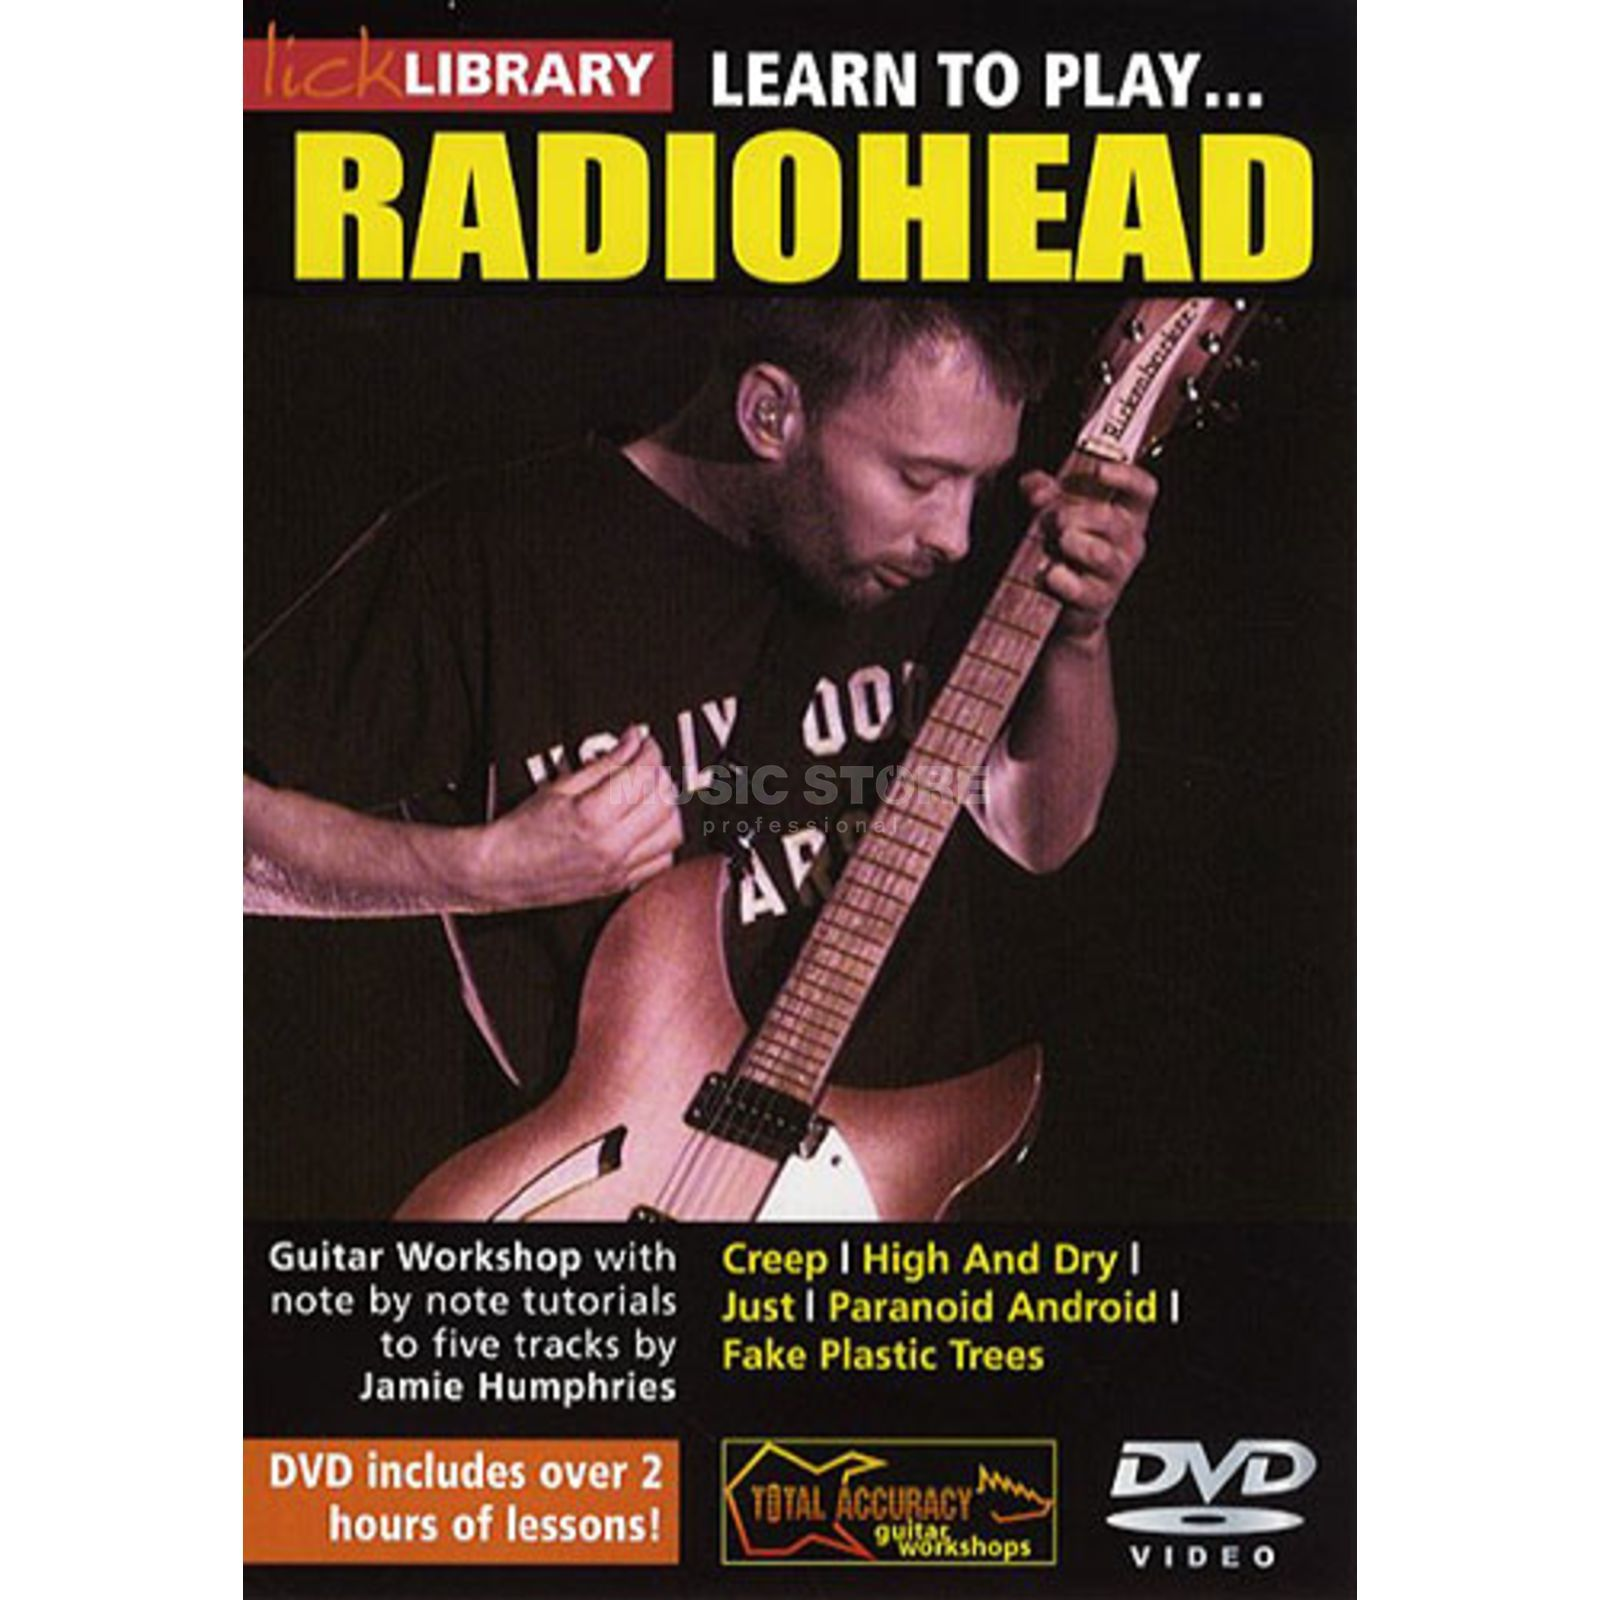 Roadrock International Lick Library: Learn To Play Radiohead DVD Produktbillede